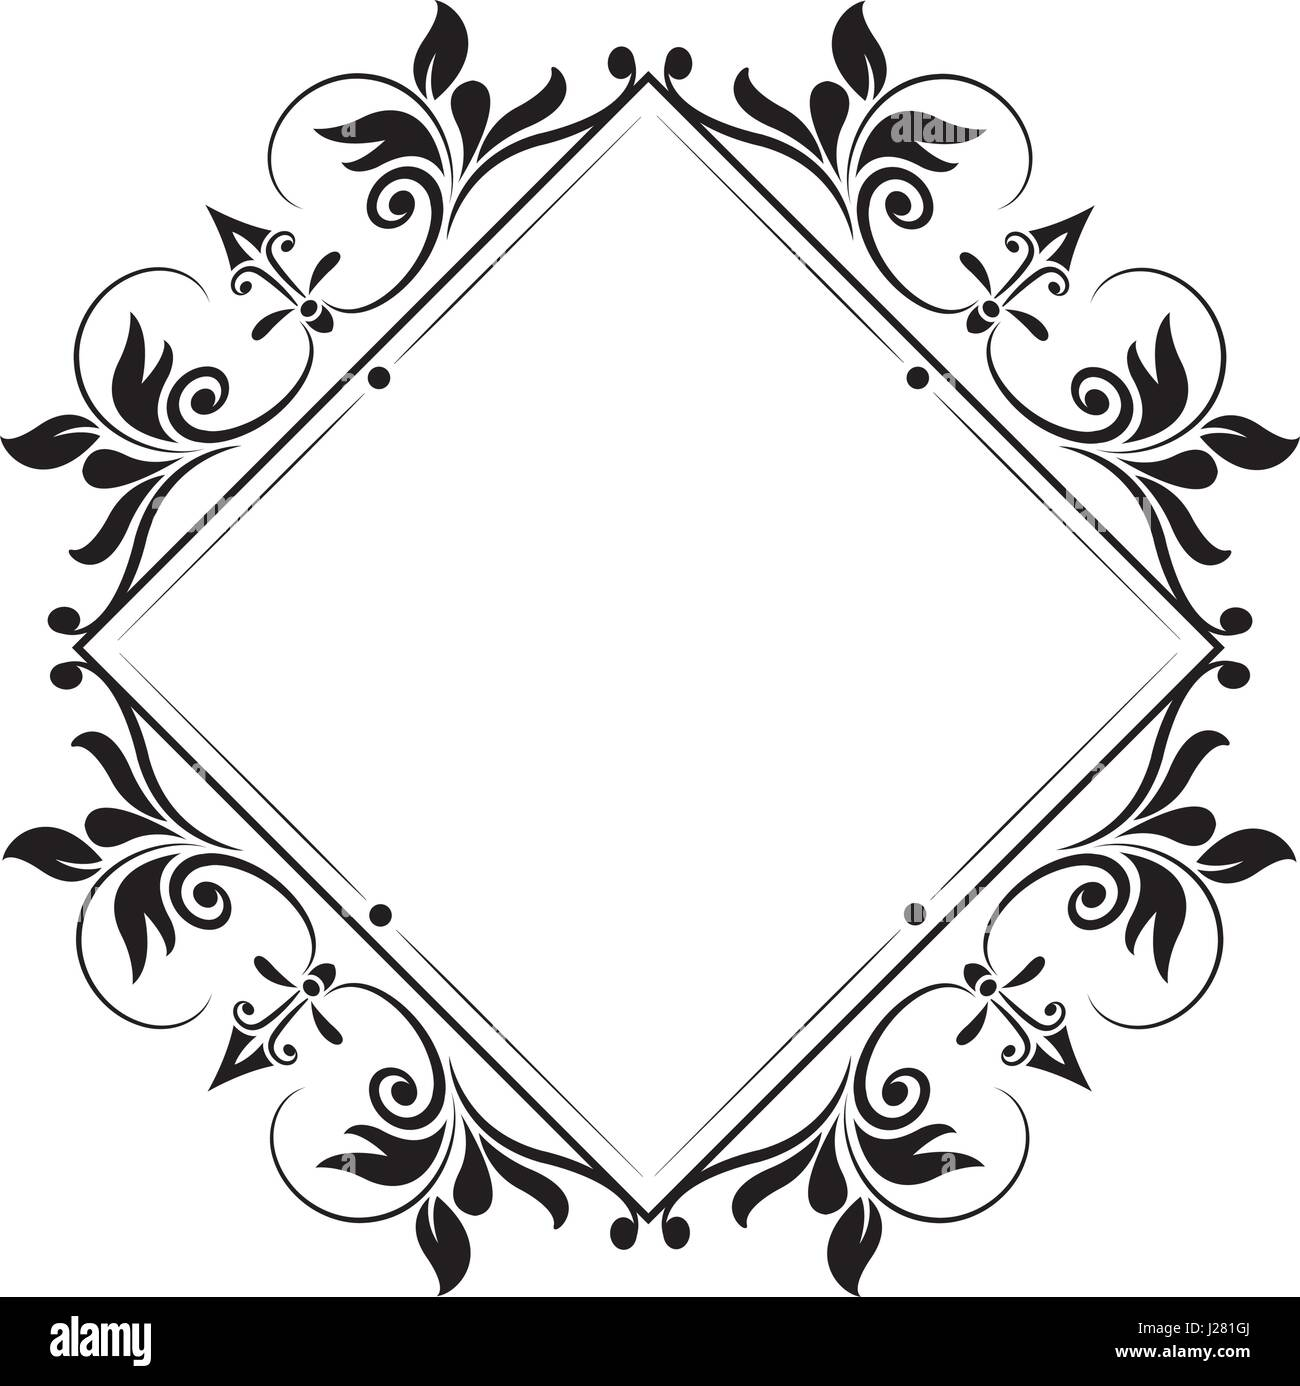 decorative frame vintage elegant flourish image - Stock Image